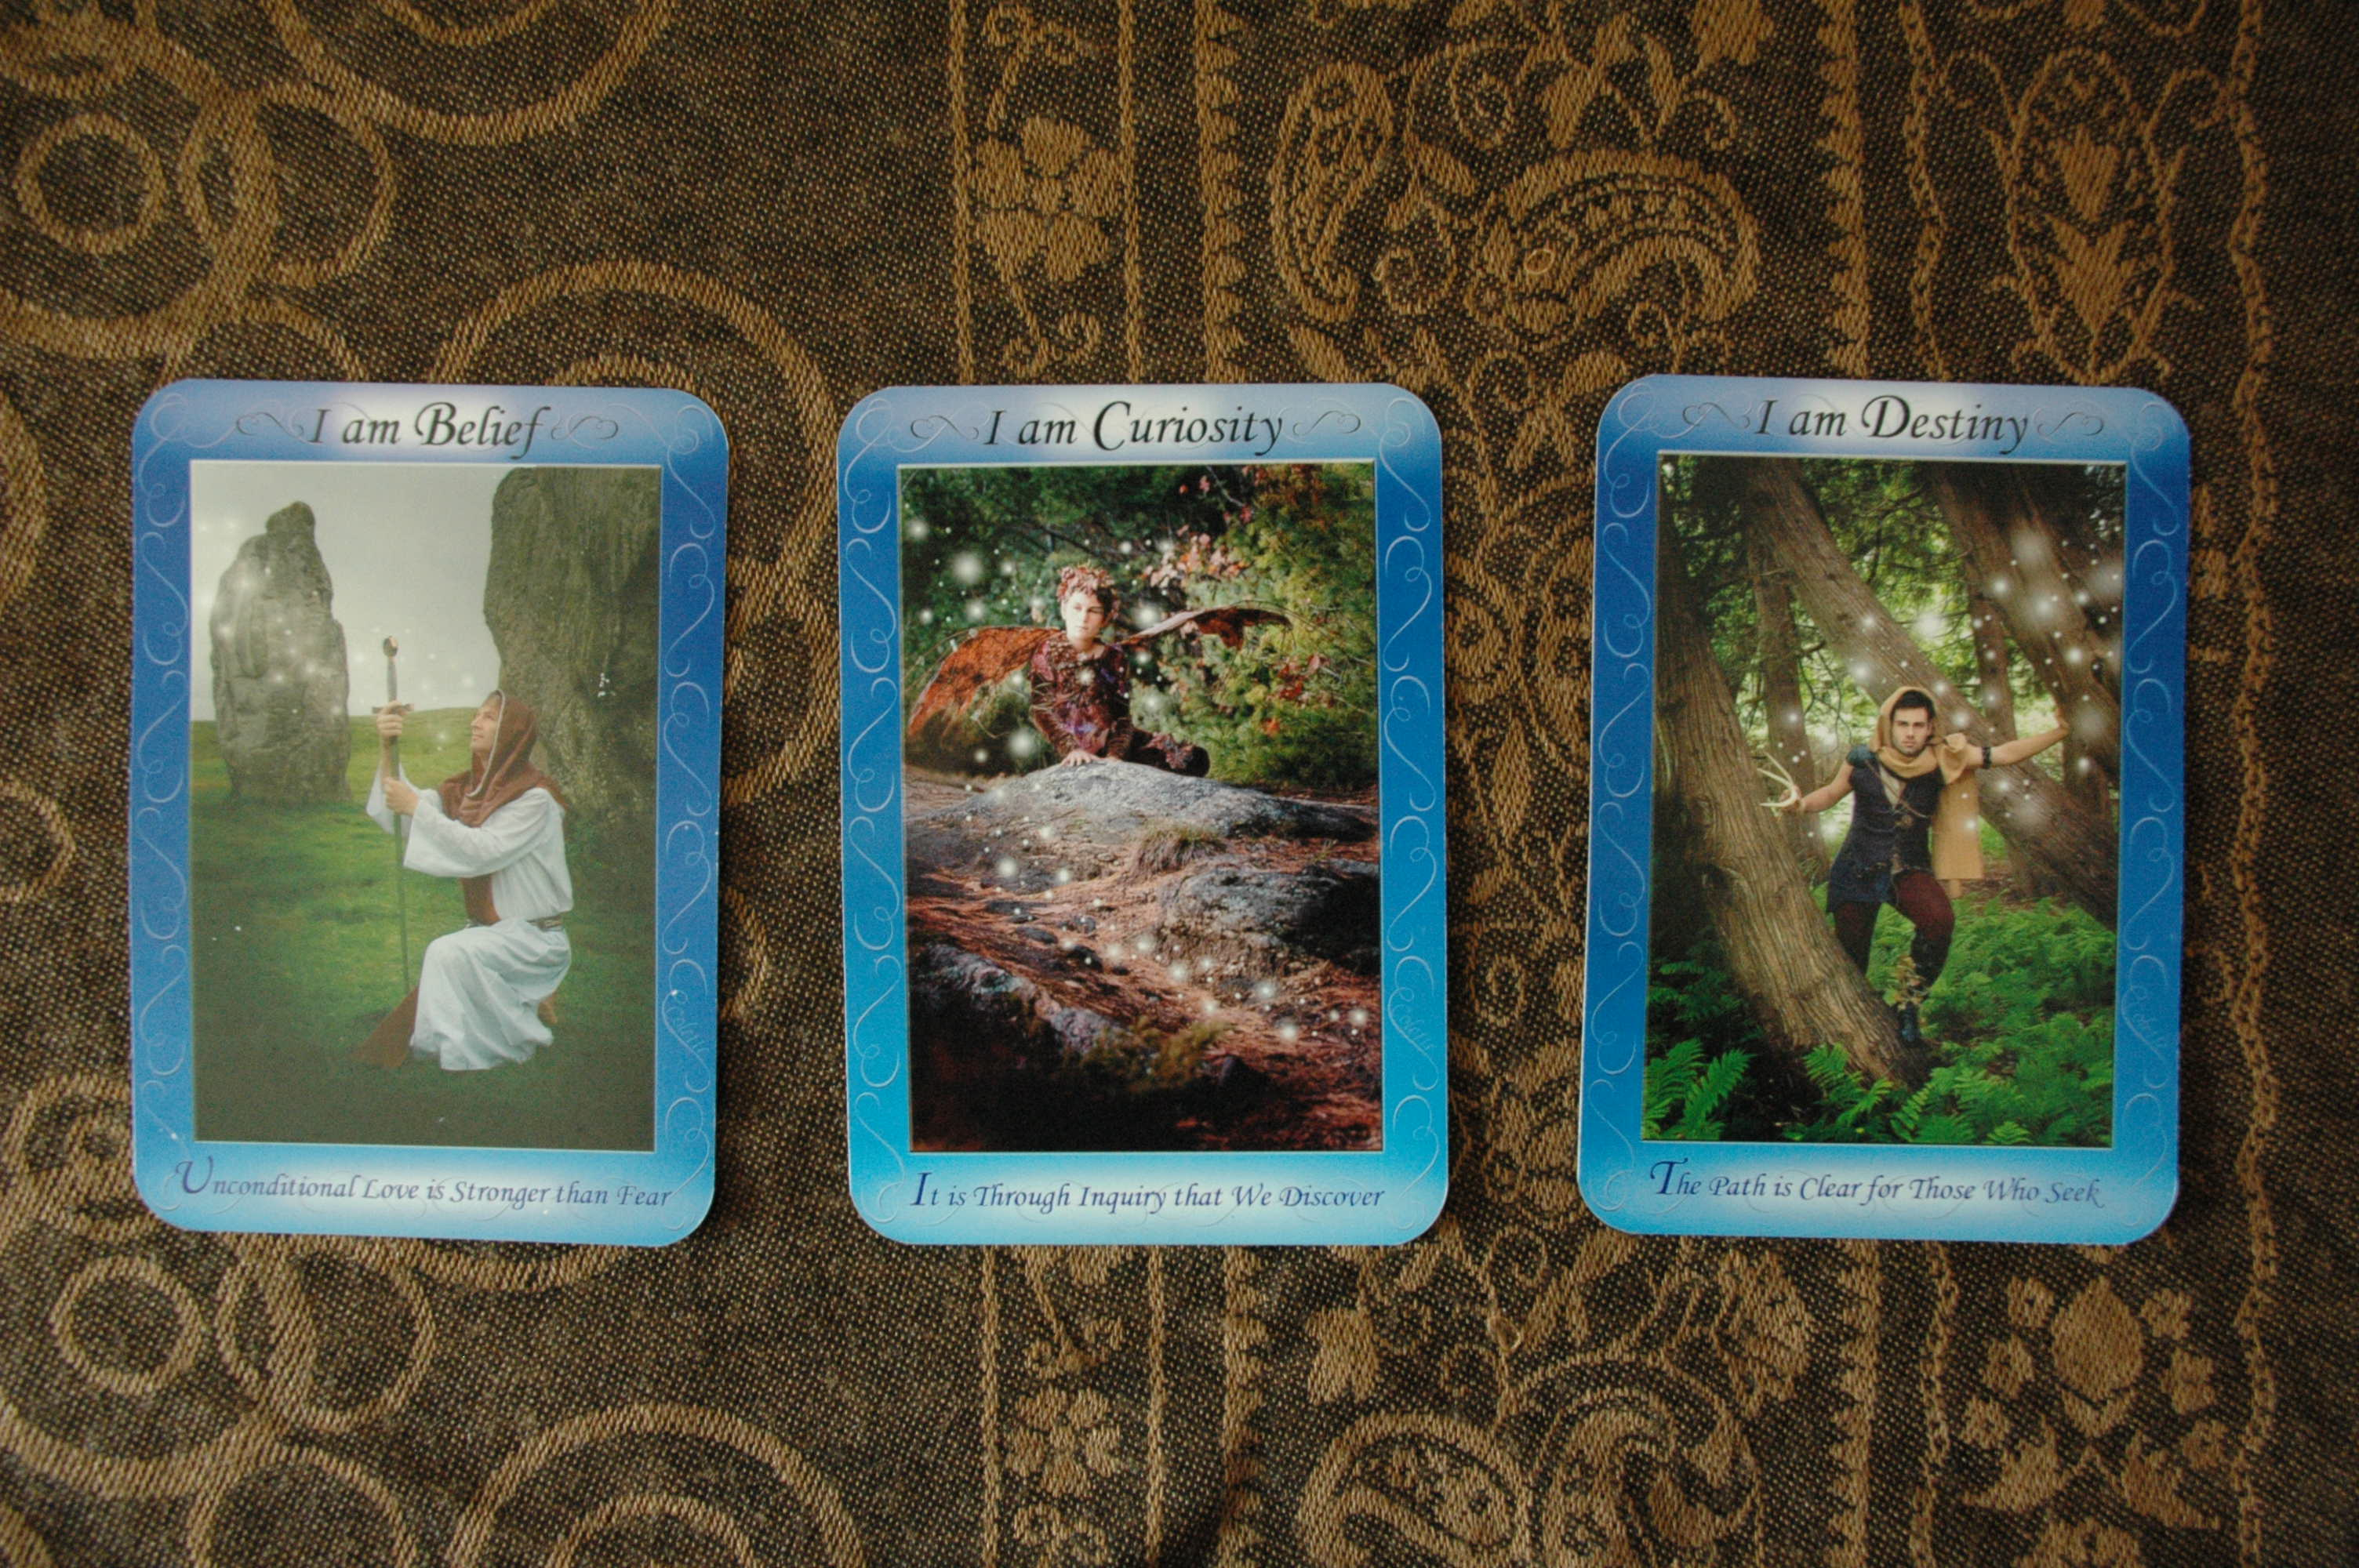 August 17th Mystic Card reading